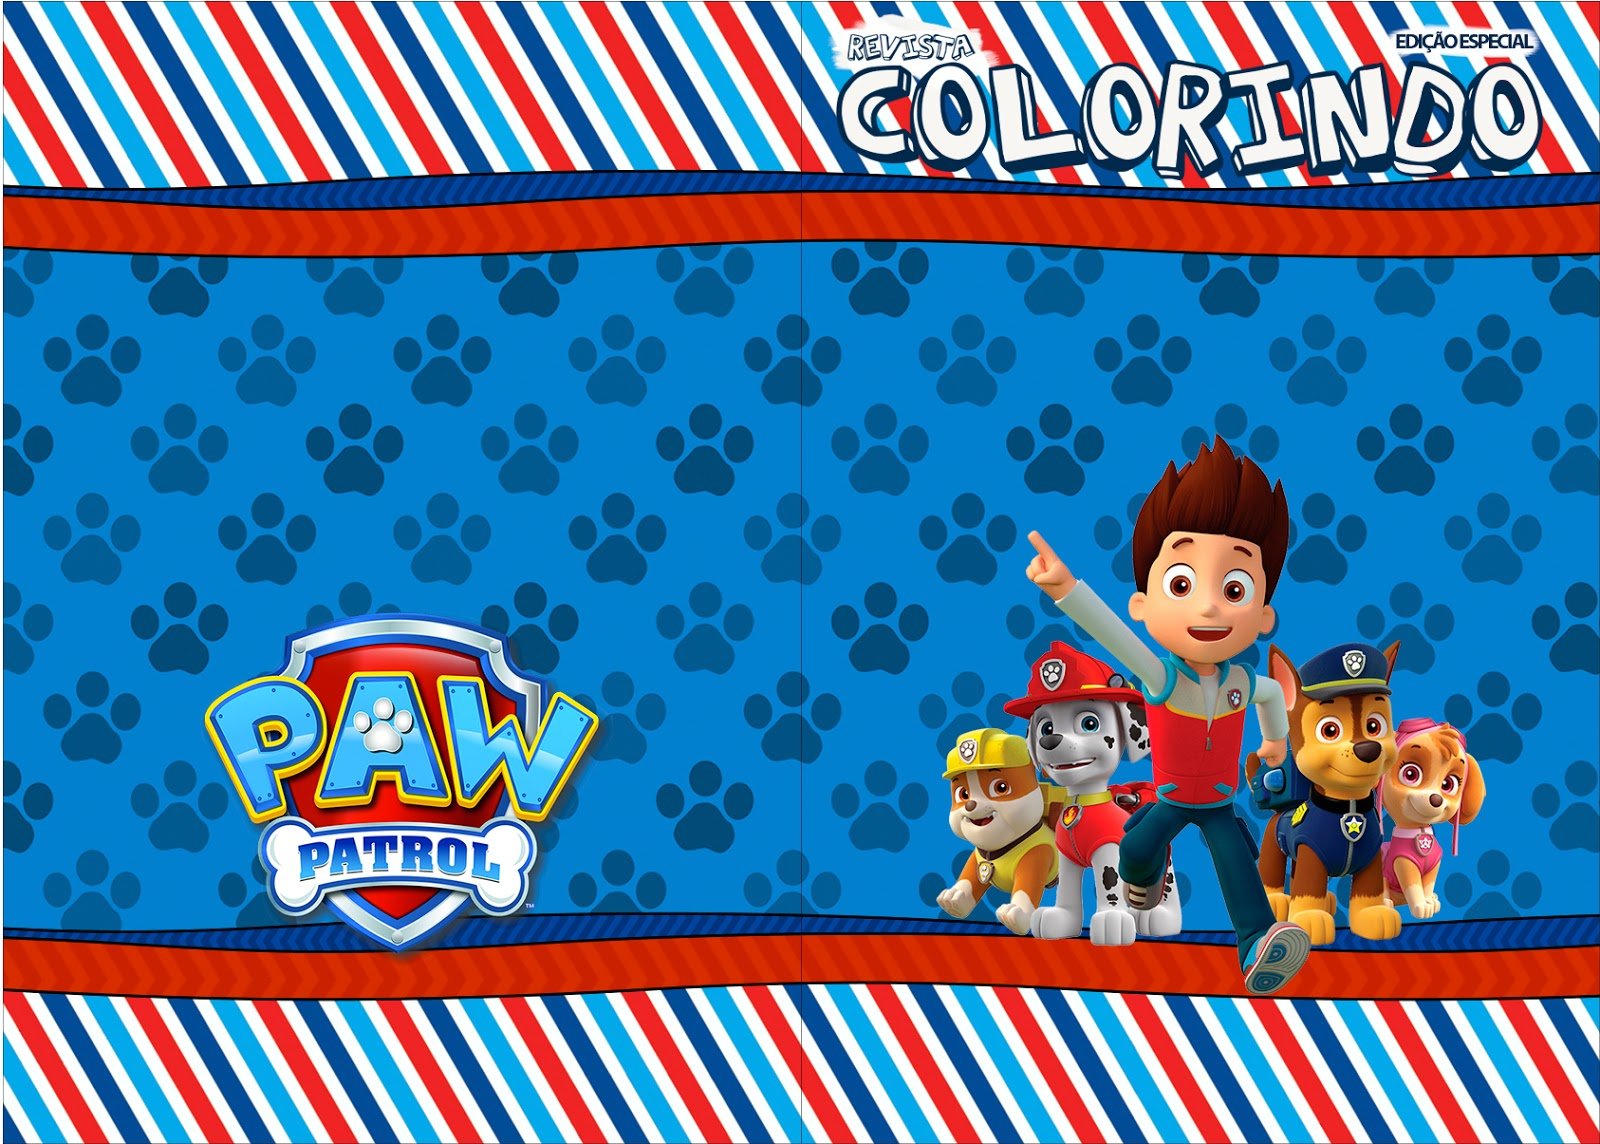 Paw Patrol: Free Party Printables. | Oh My Fiesta! in english